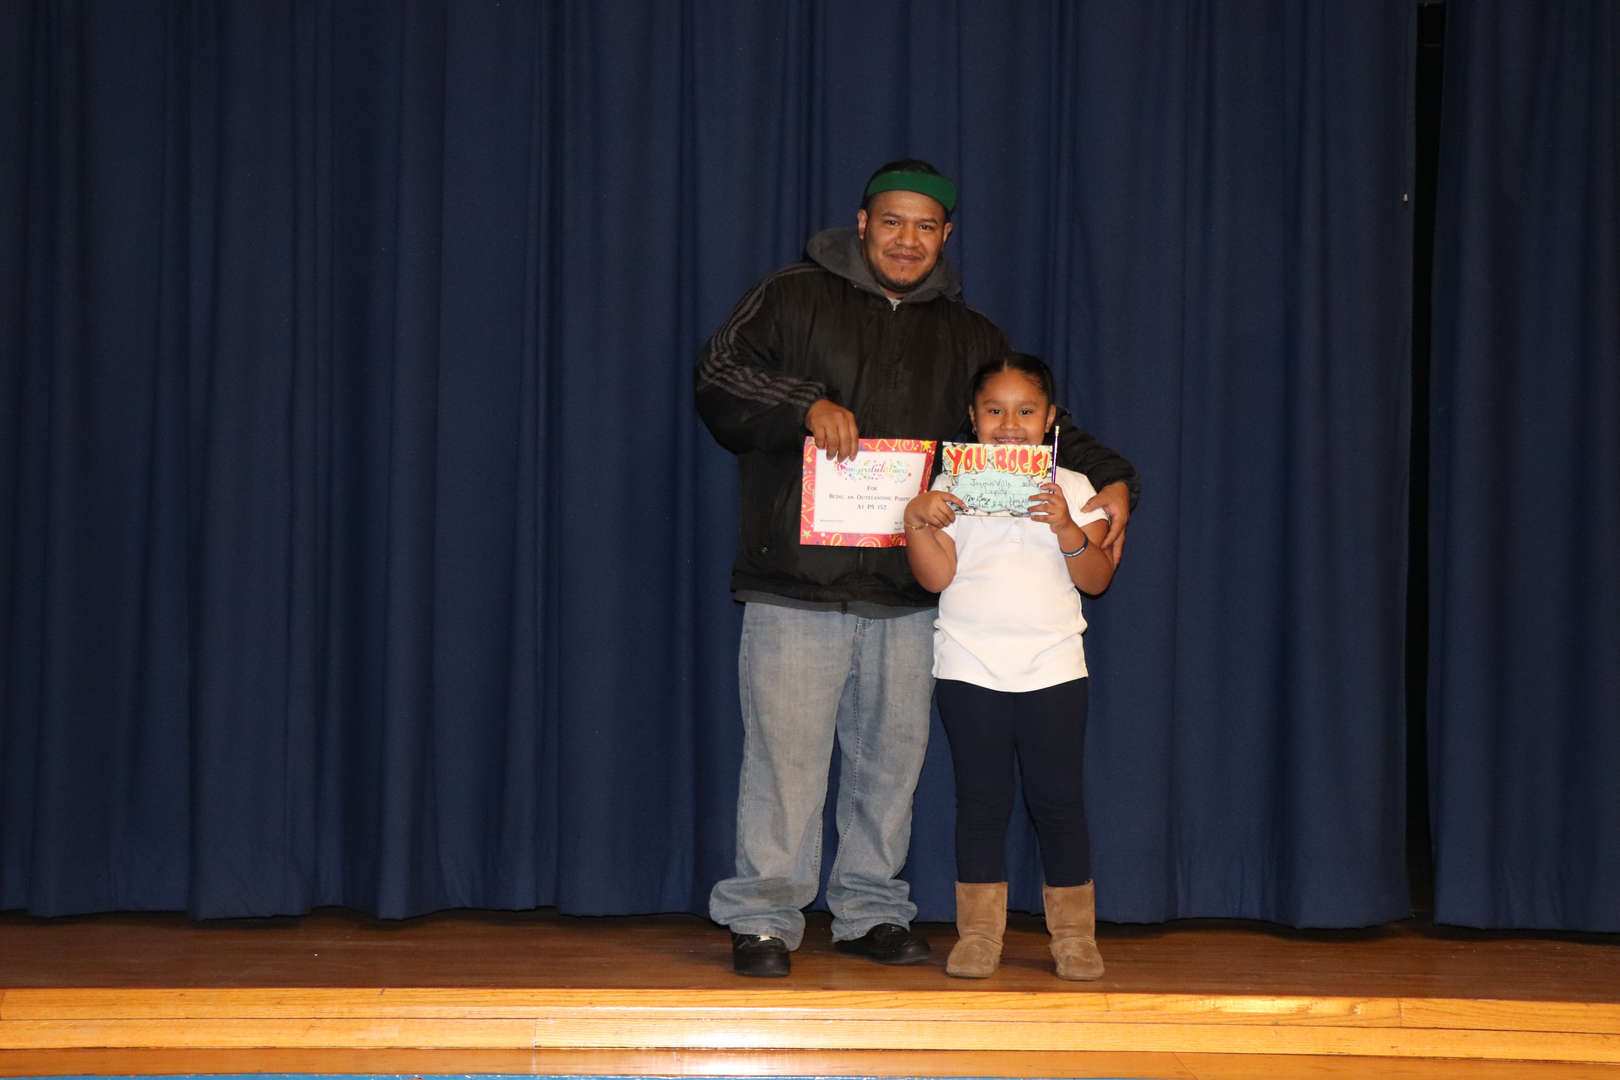 Second Grade parent with their child who is student of the month.